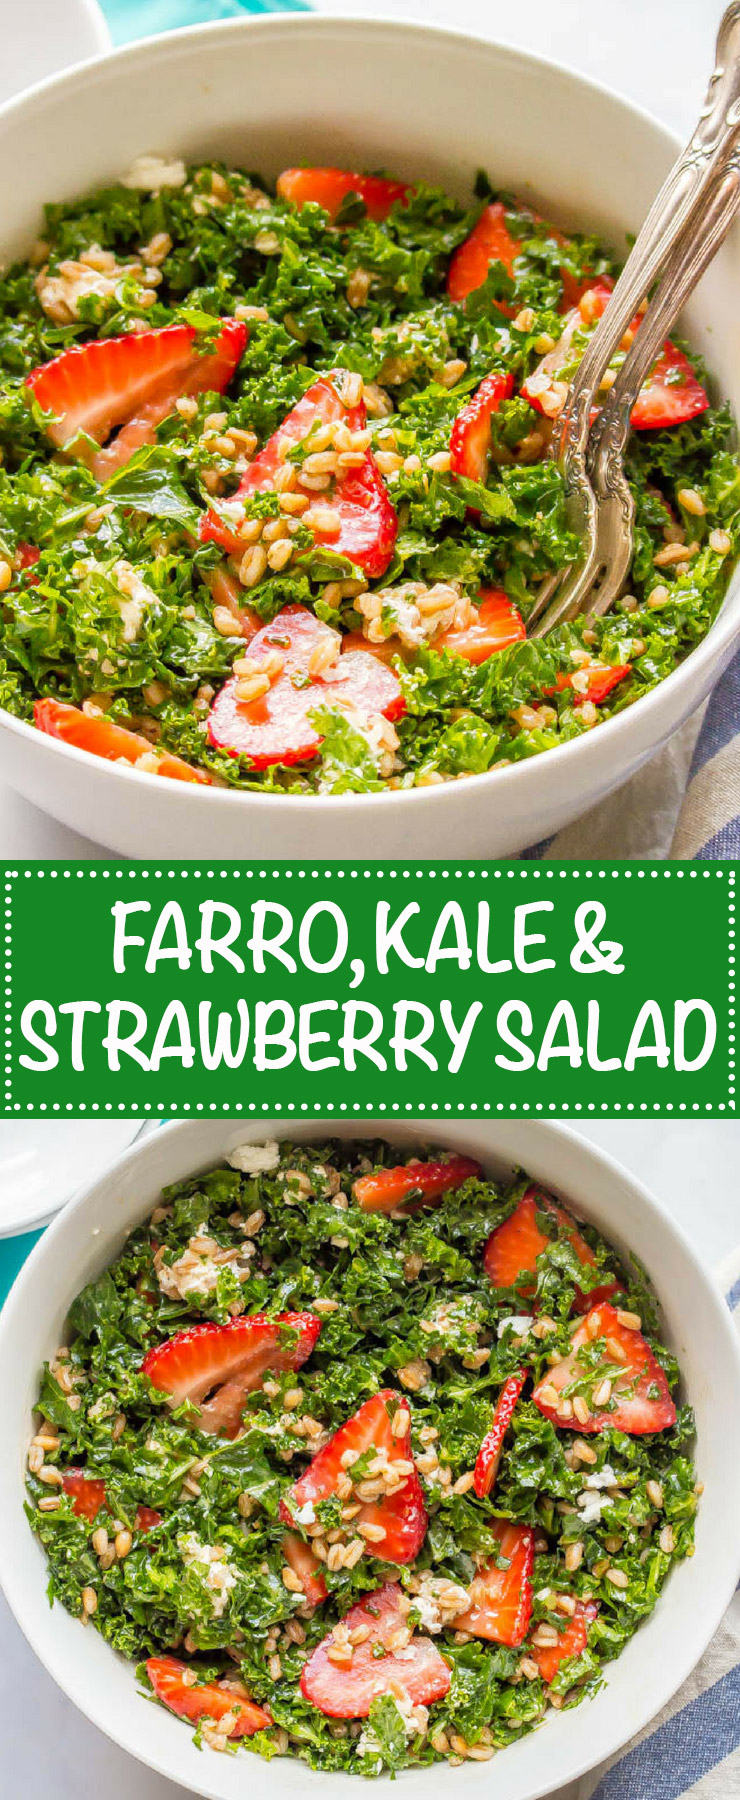 Farro, kale and strawberry salad with goat cheese is a delicious combination with bright, fresh flavors and tons of great texture. It's perfect for a light lunch or as a side salad with dinner. #farrosalad #kalesalad #veggiesalad #healthysalad | www.familyfoodonthetable.com